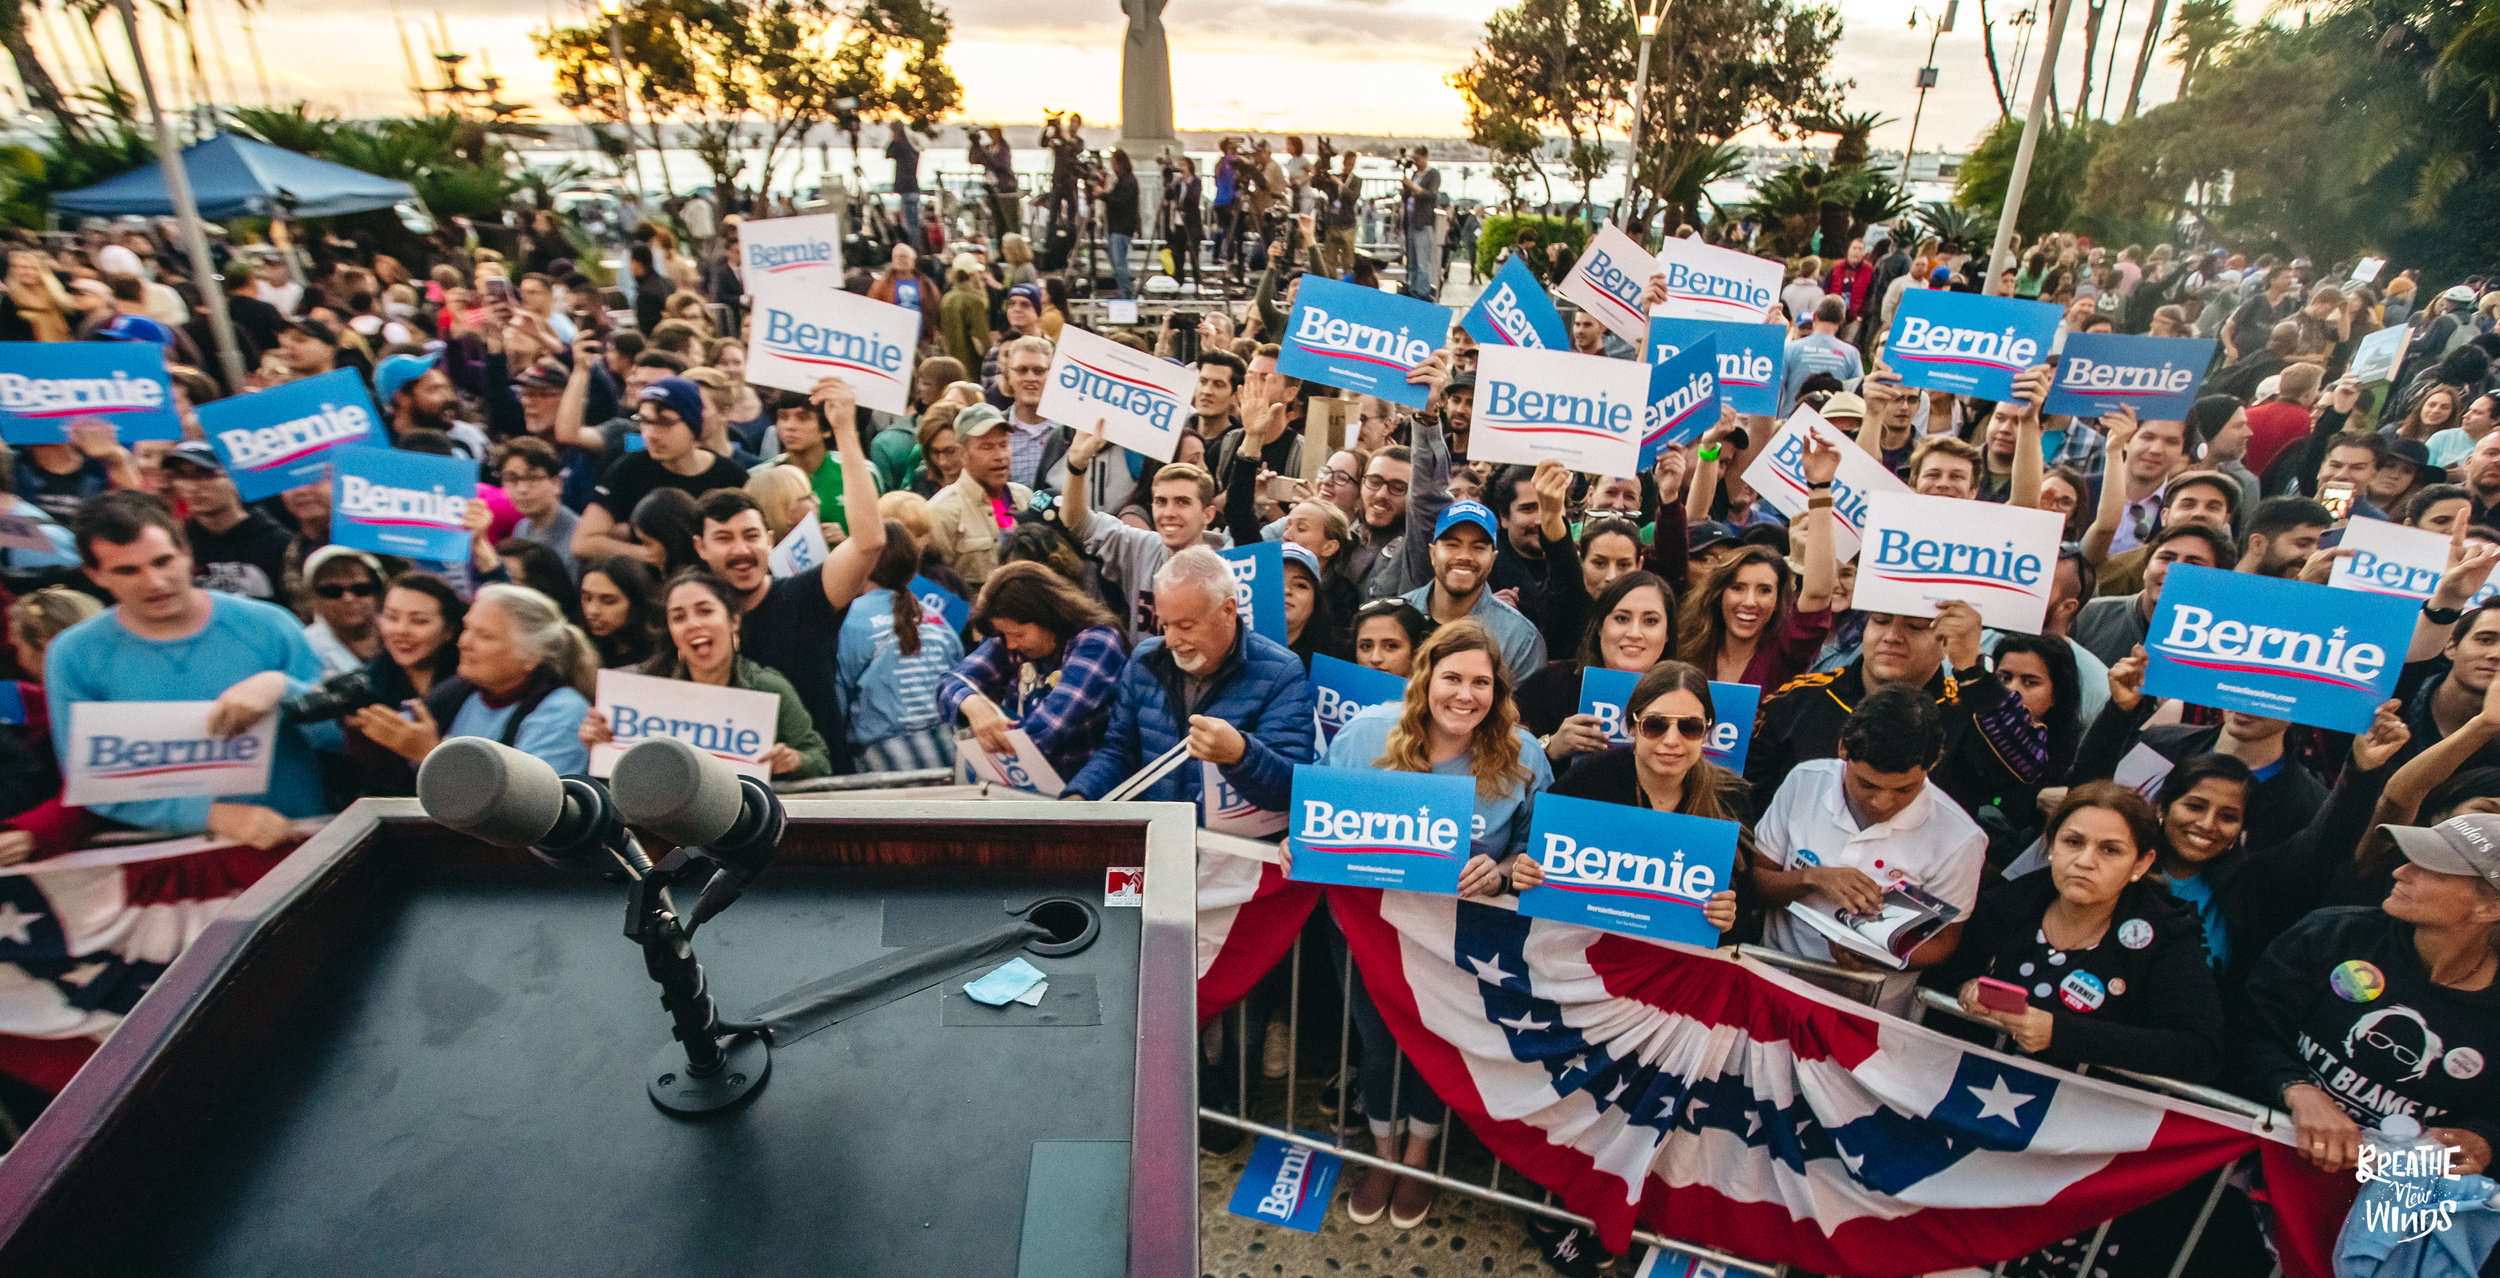 BernieInSD_22March2019-Crowd (81 of 94).jpg